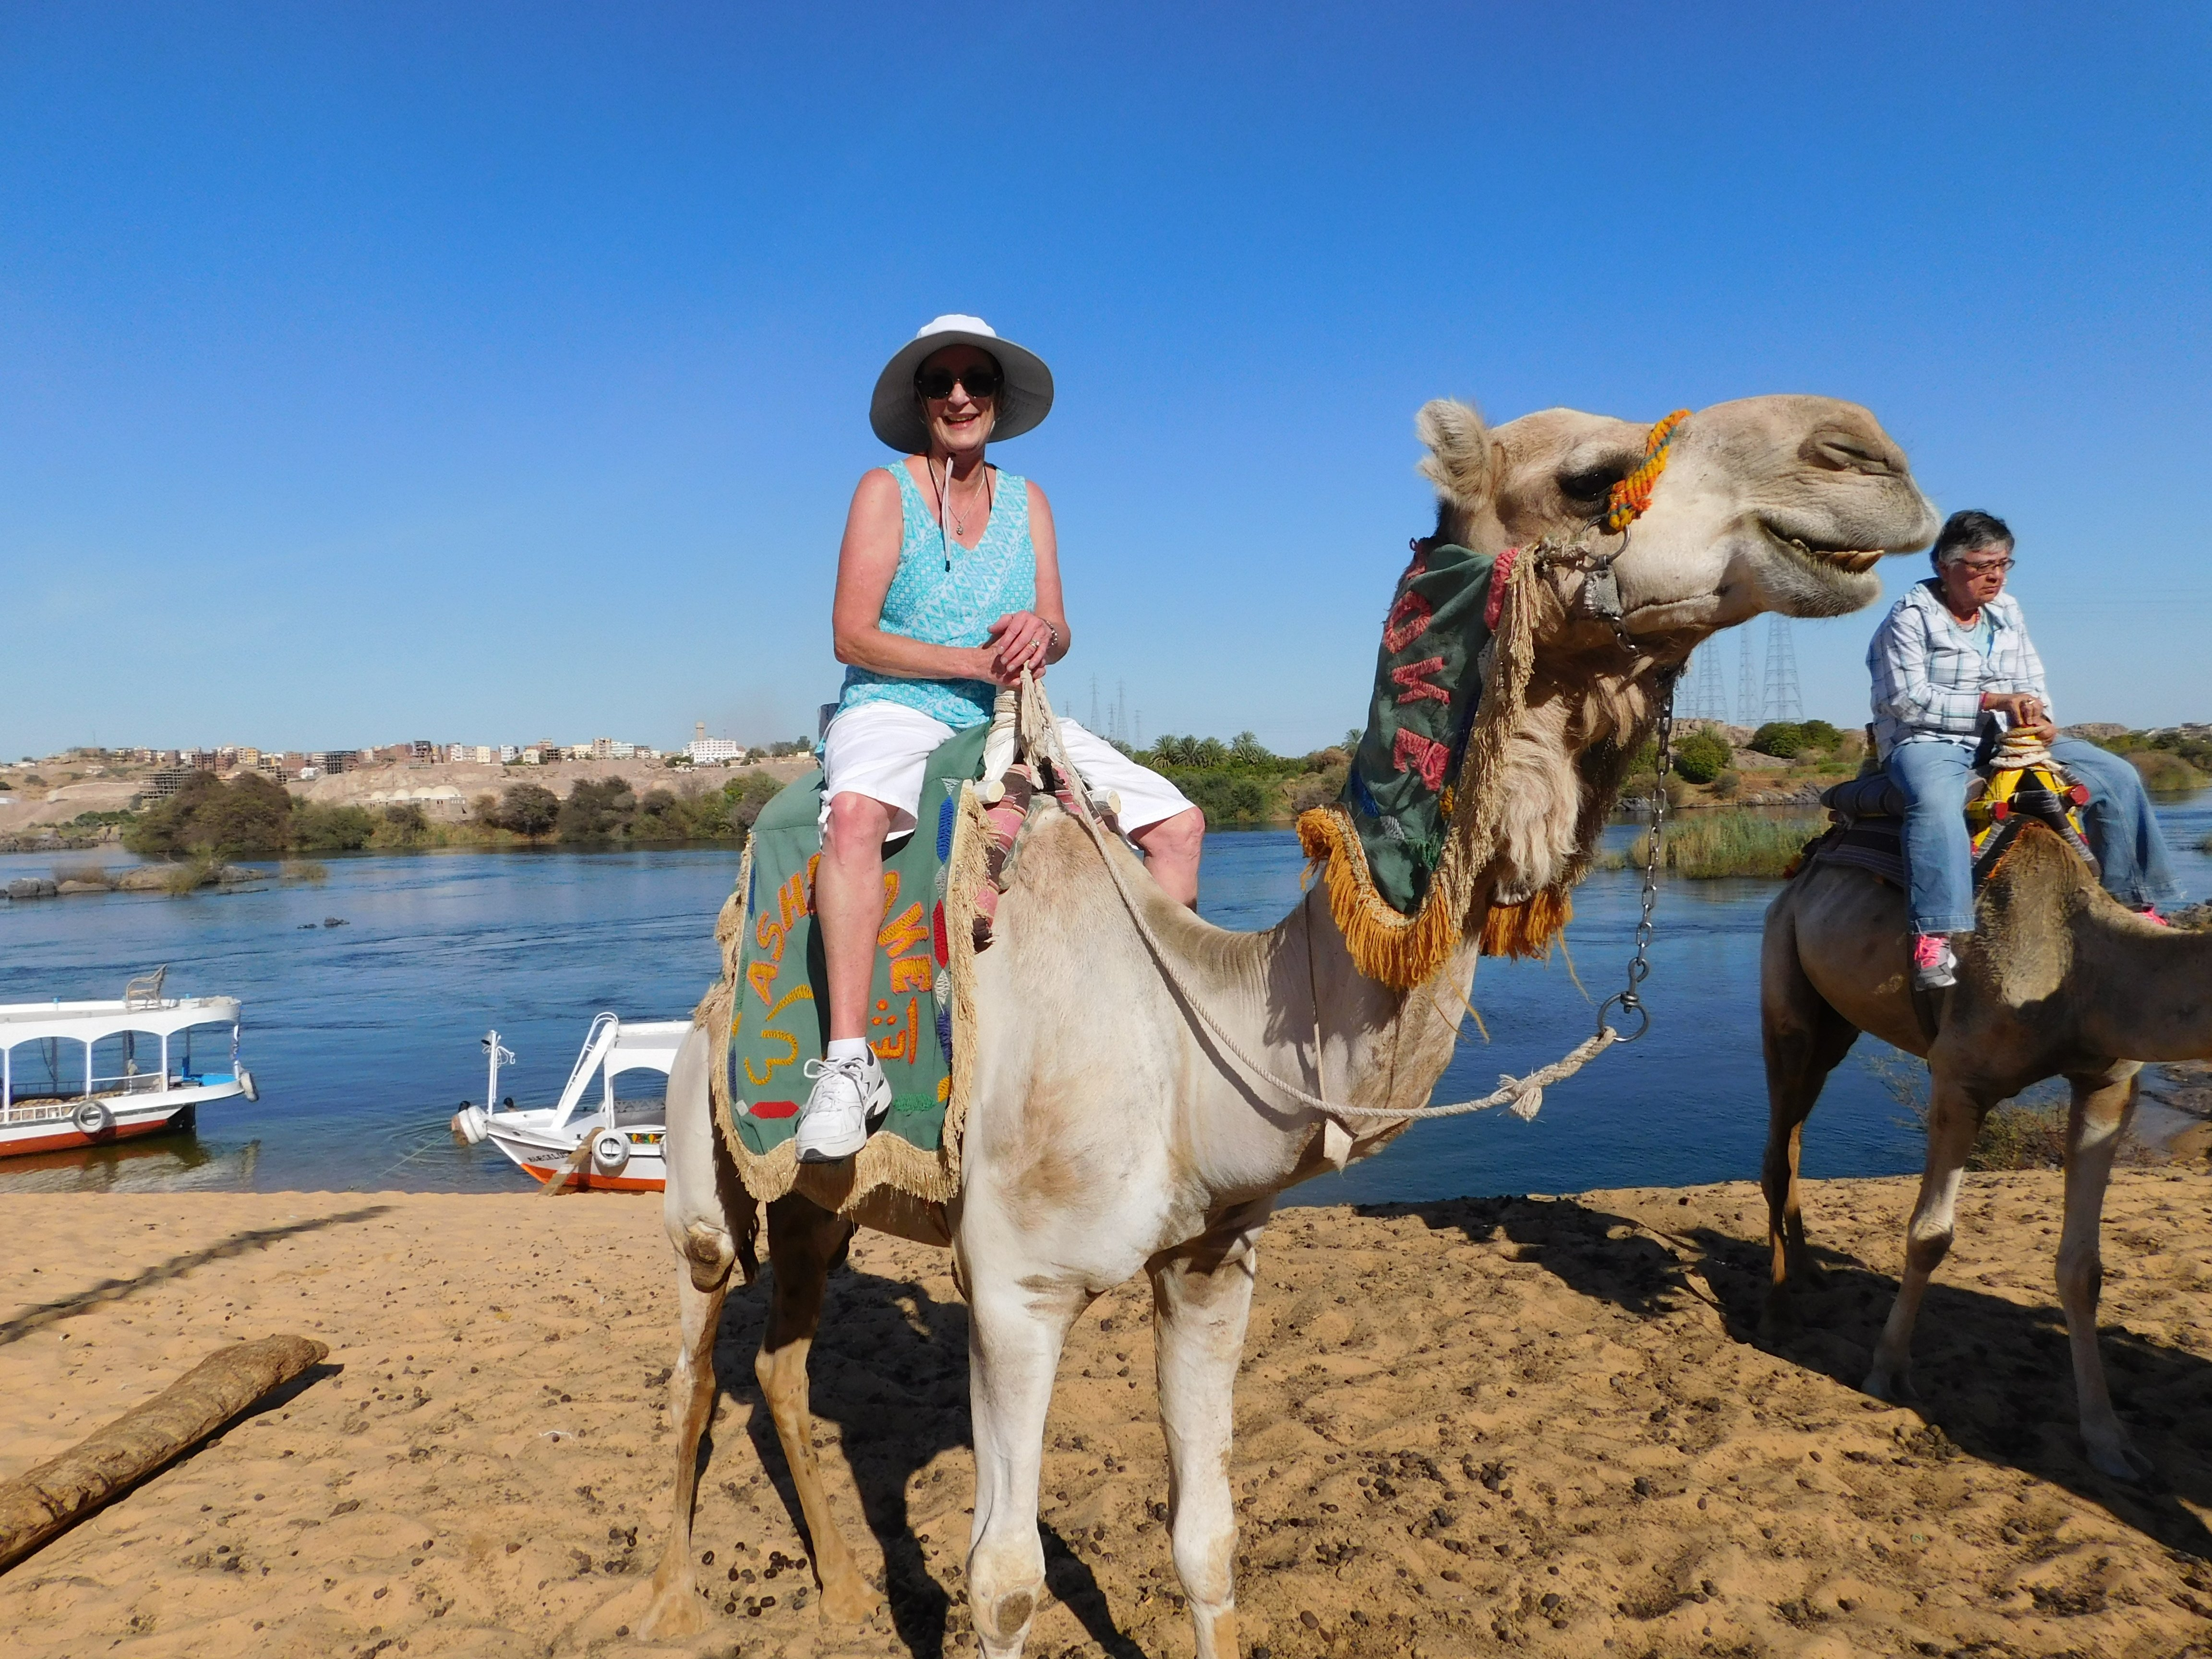 Camel ride on shore of the Nile River